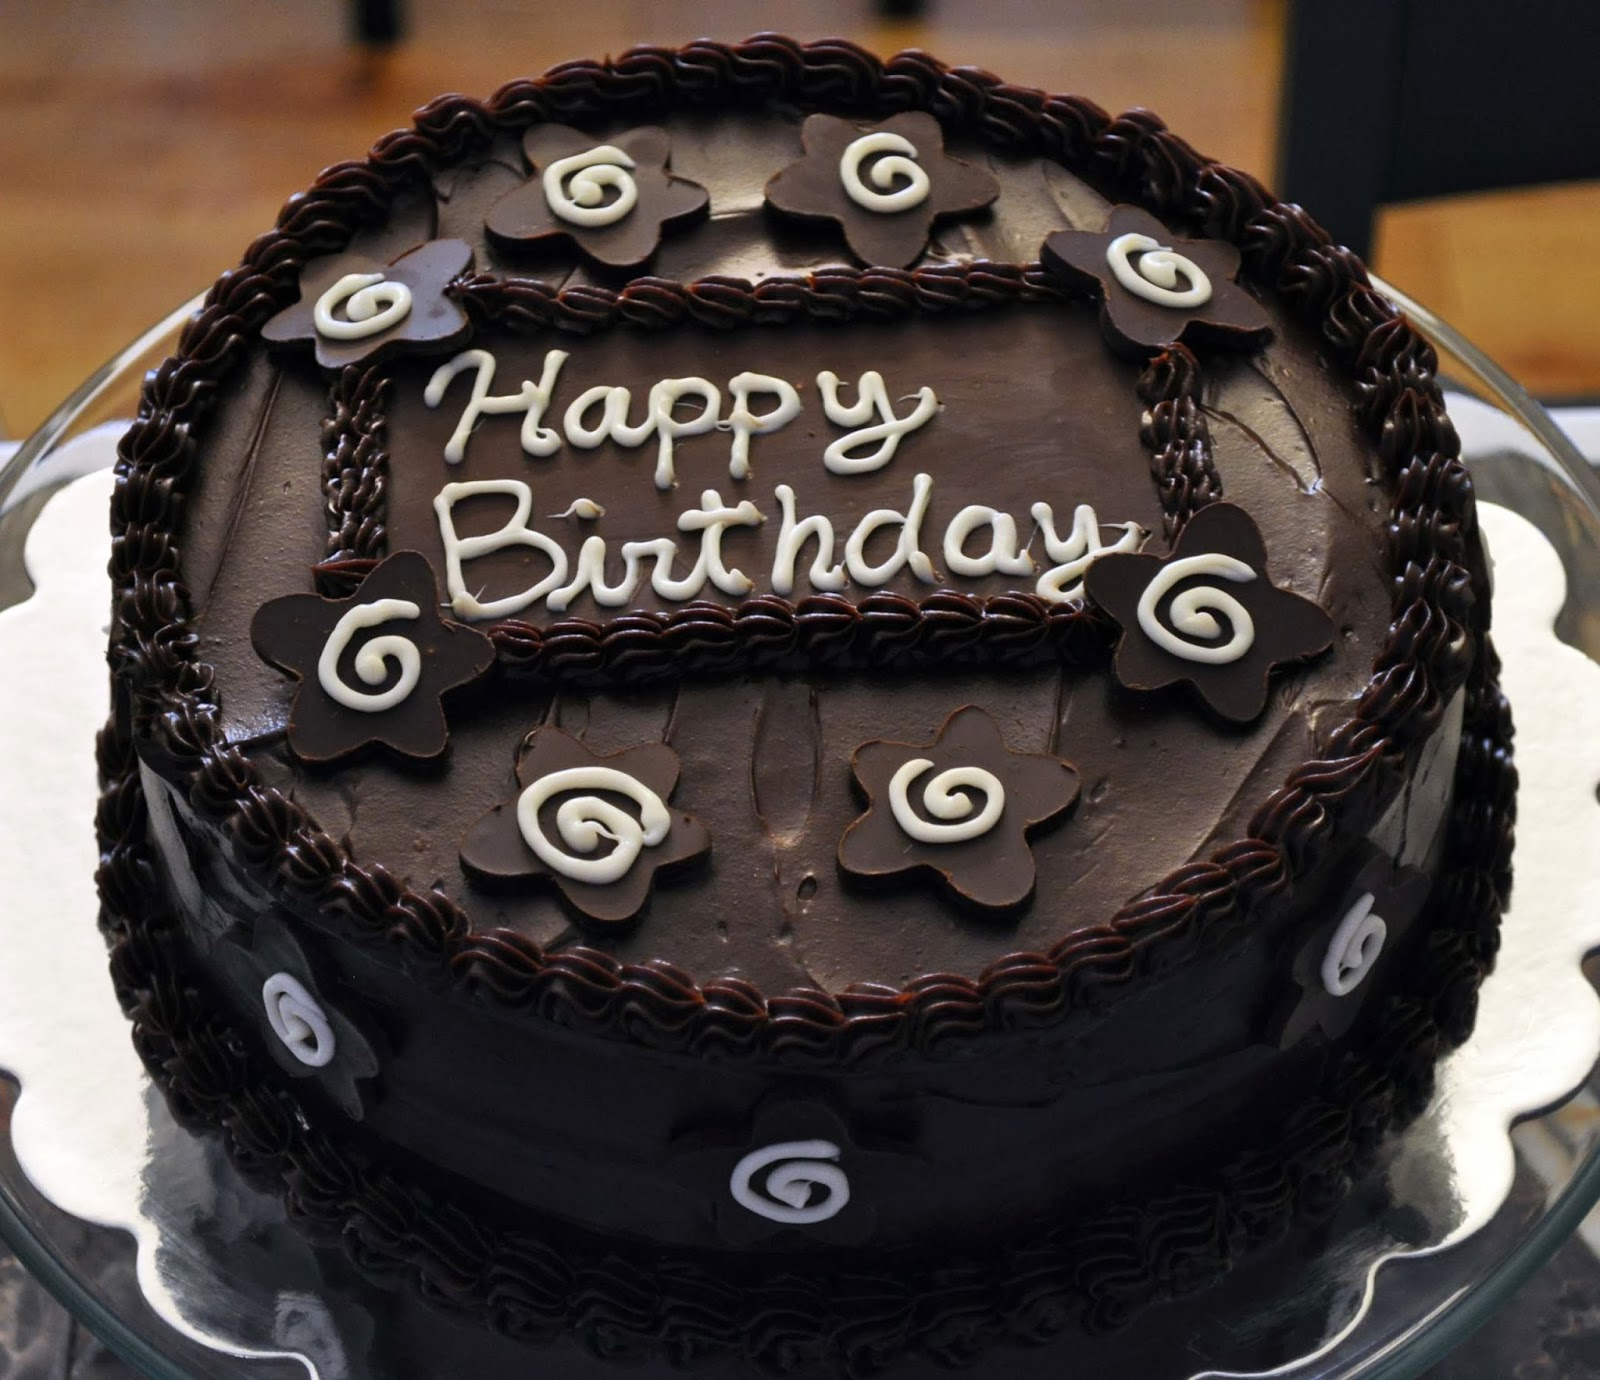 Happy-Birthday-Black-Chocolate-Cake-Scene-Image-HD